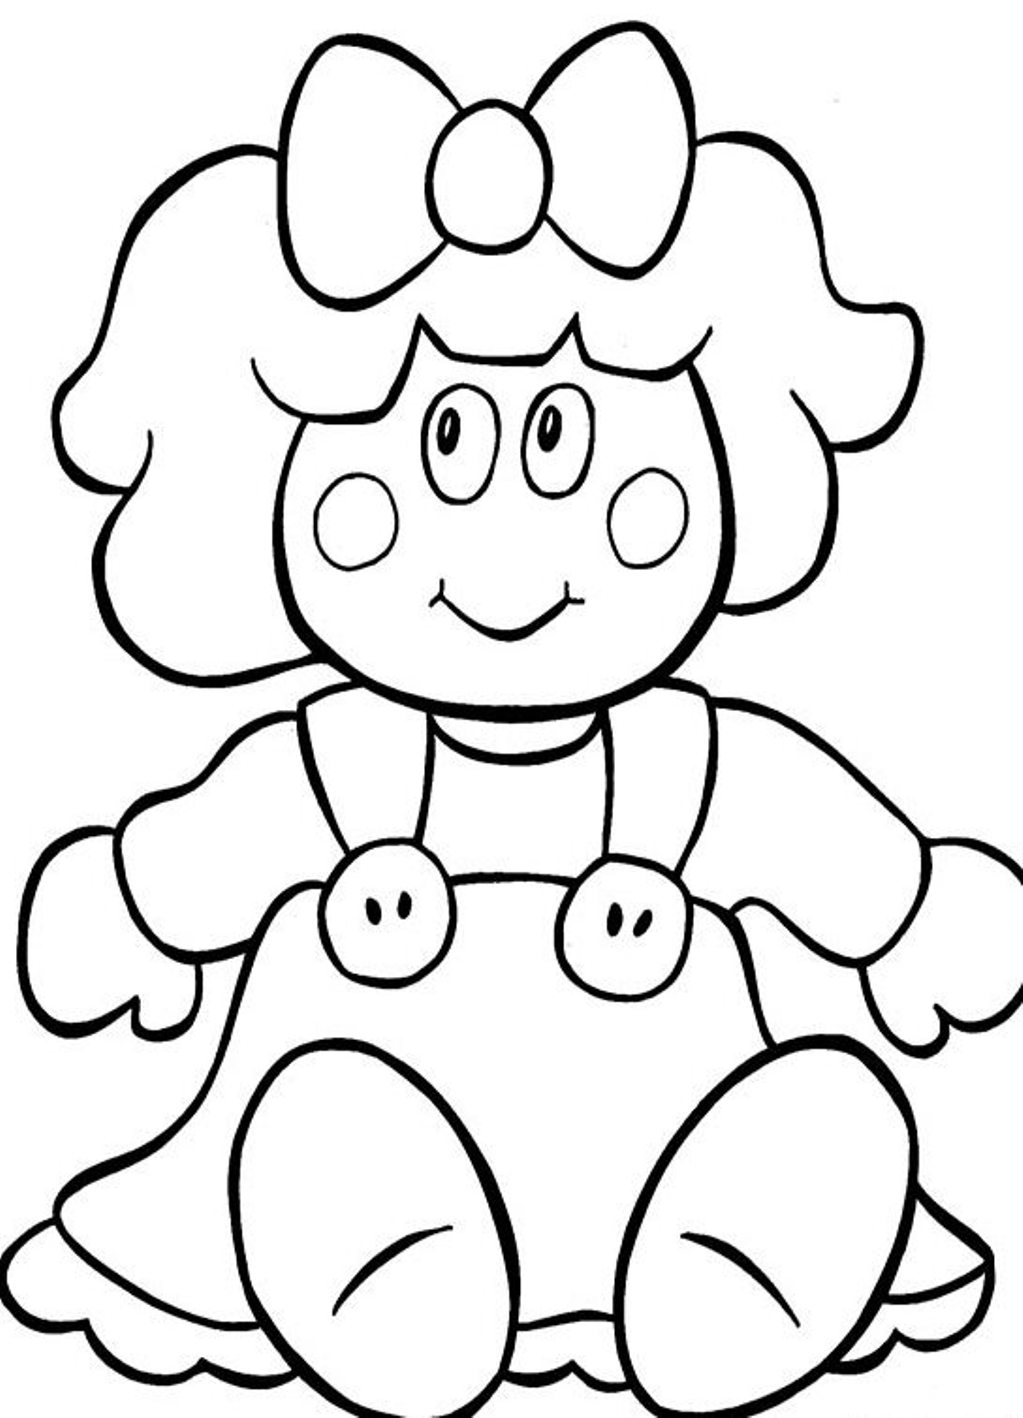 doll coloring sheets dolls coloring pages free printable dolls coloring pages sheets coloring doll